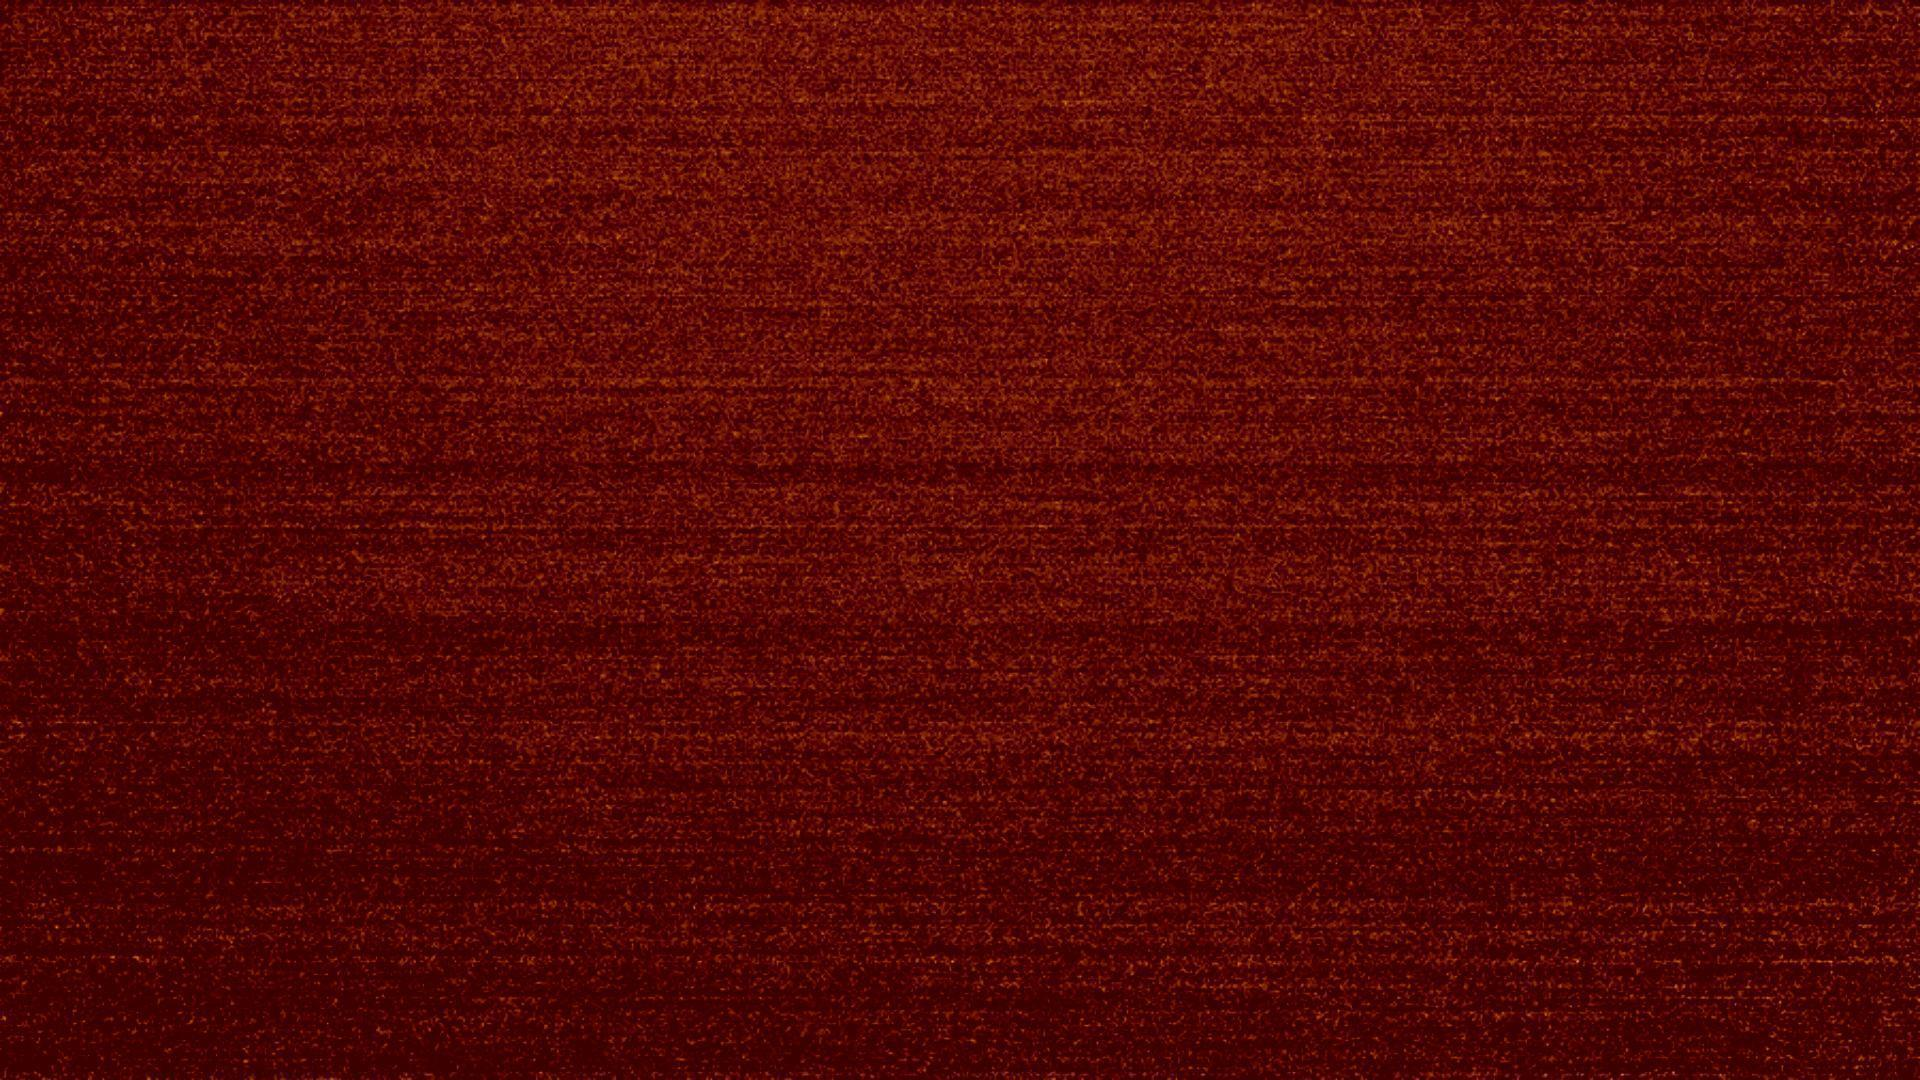 red textured background hd - photo #30